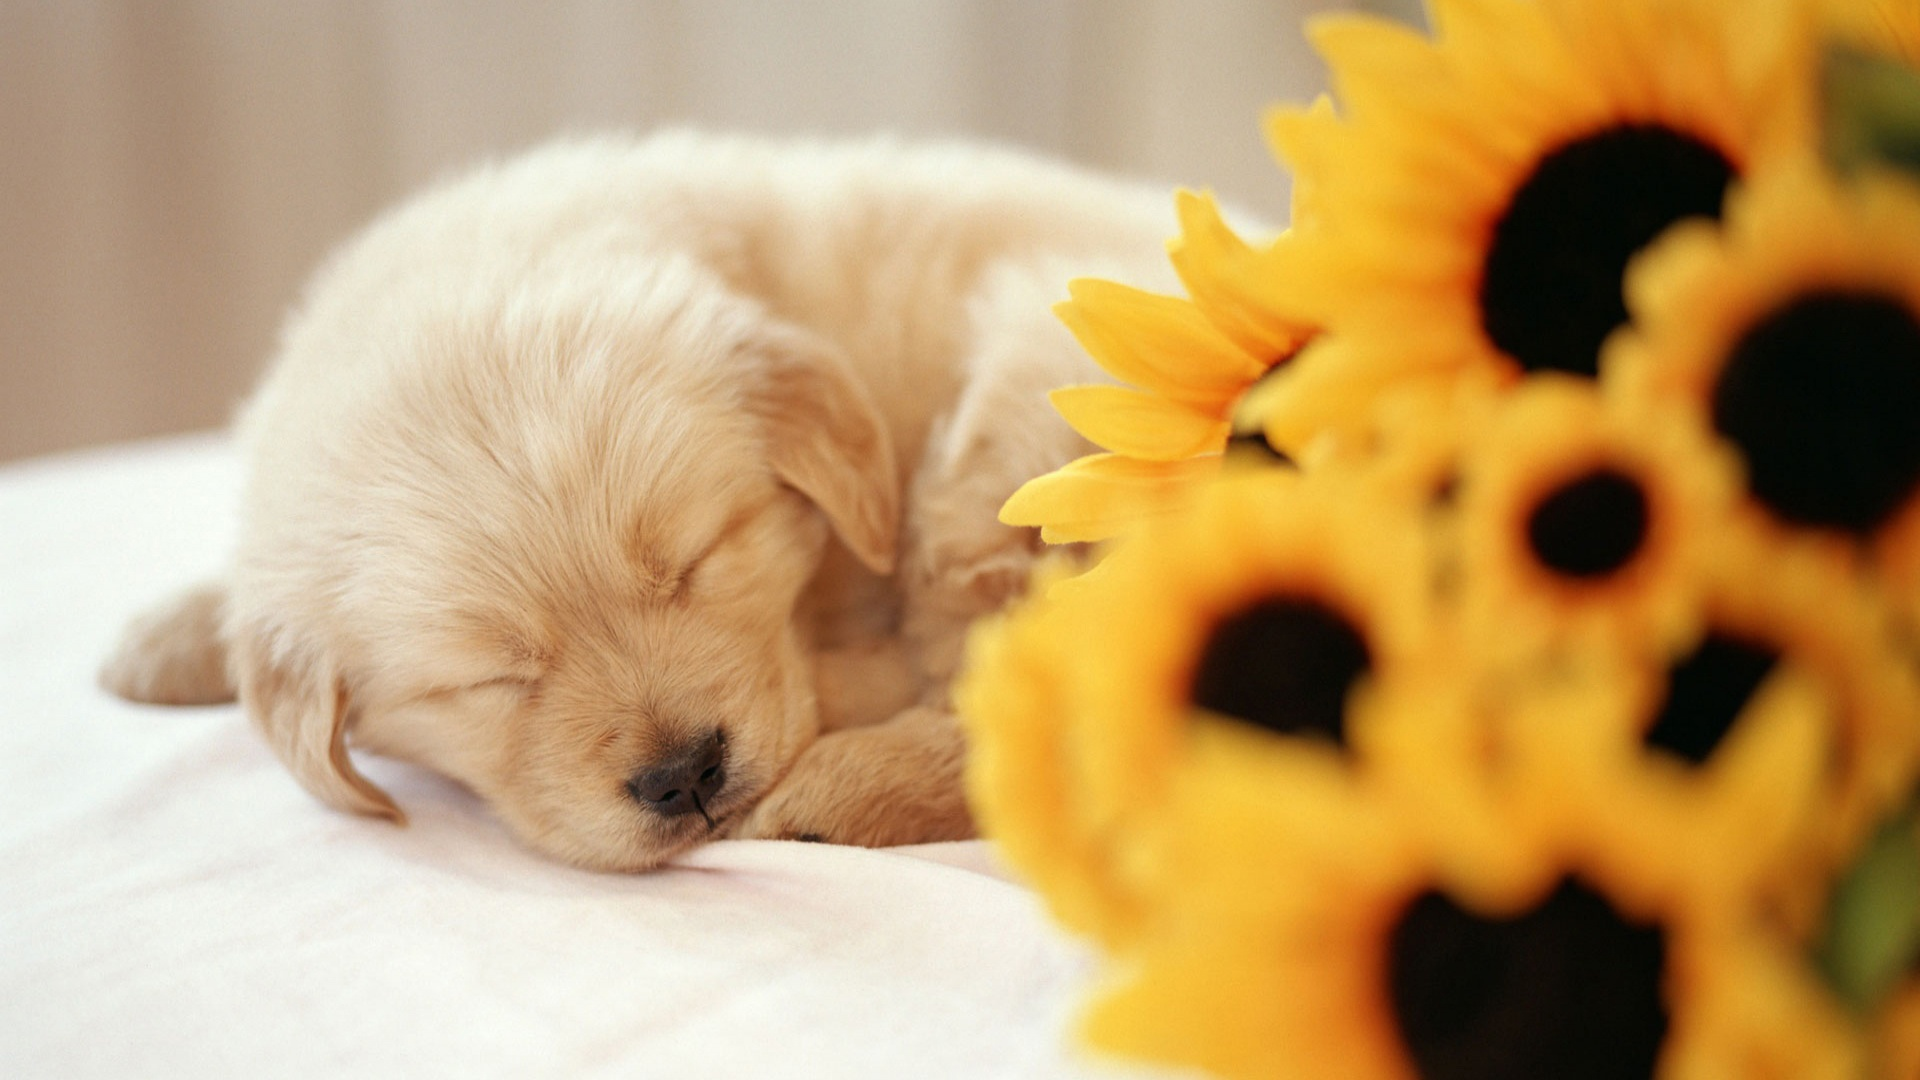 Sleeping Puppy Wallpapers 1920x1080